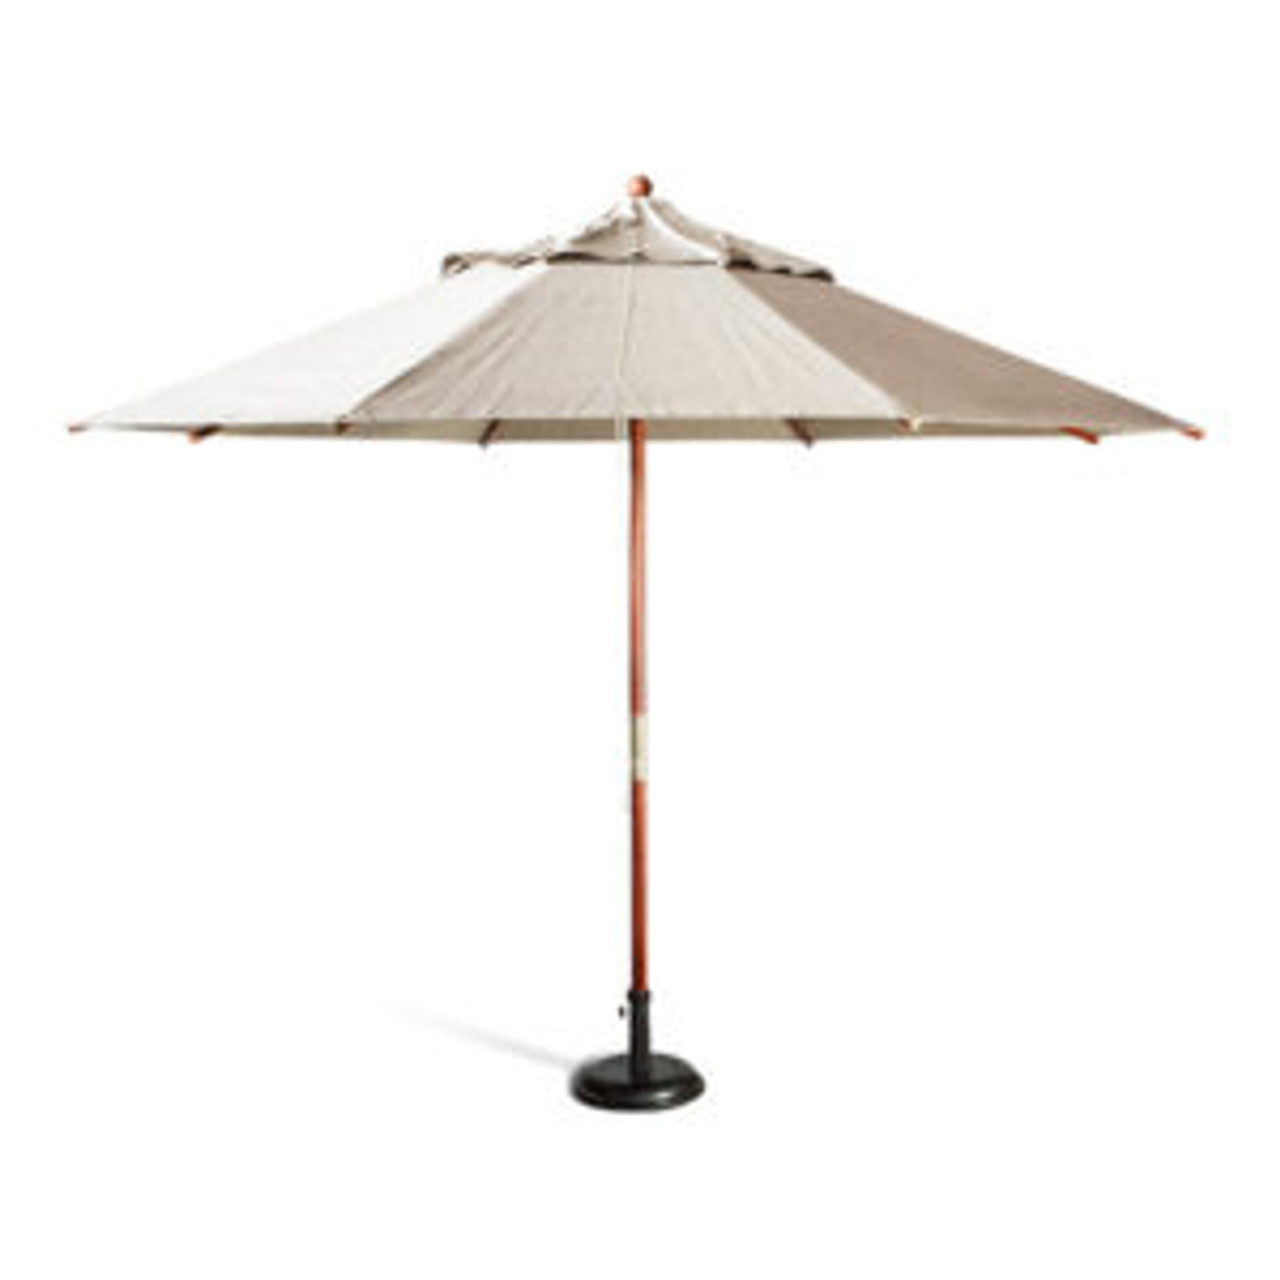 Lethaby 2M Market Umbrella - Wooden Frame with  Planosol Shade